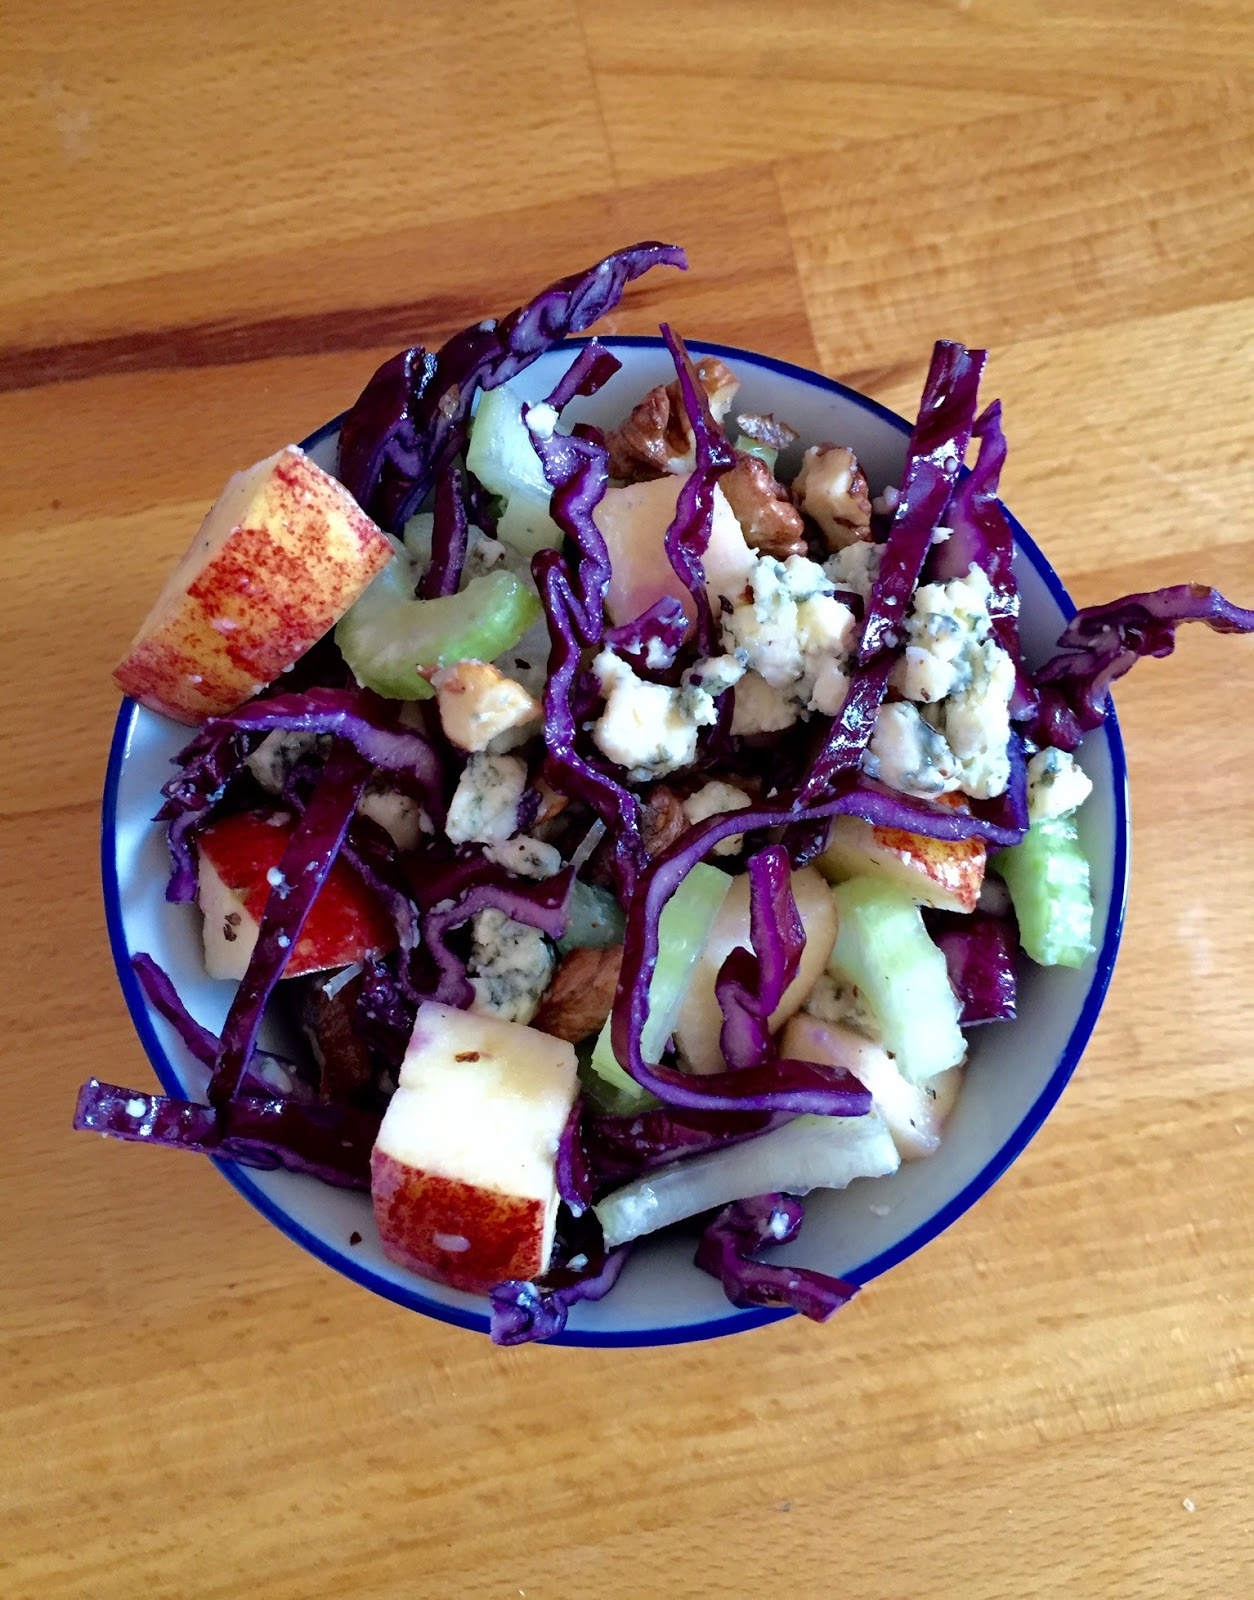 Stilton Cheese & Red Cabbage Salad With Apple from Captainbobcat.com